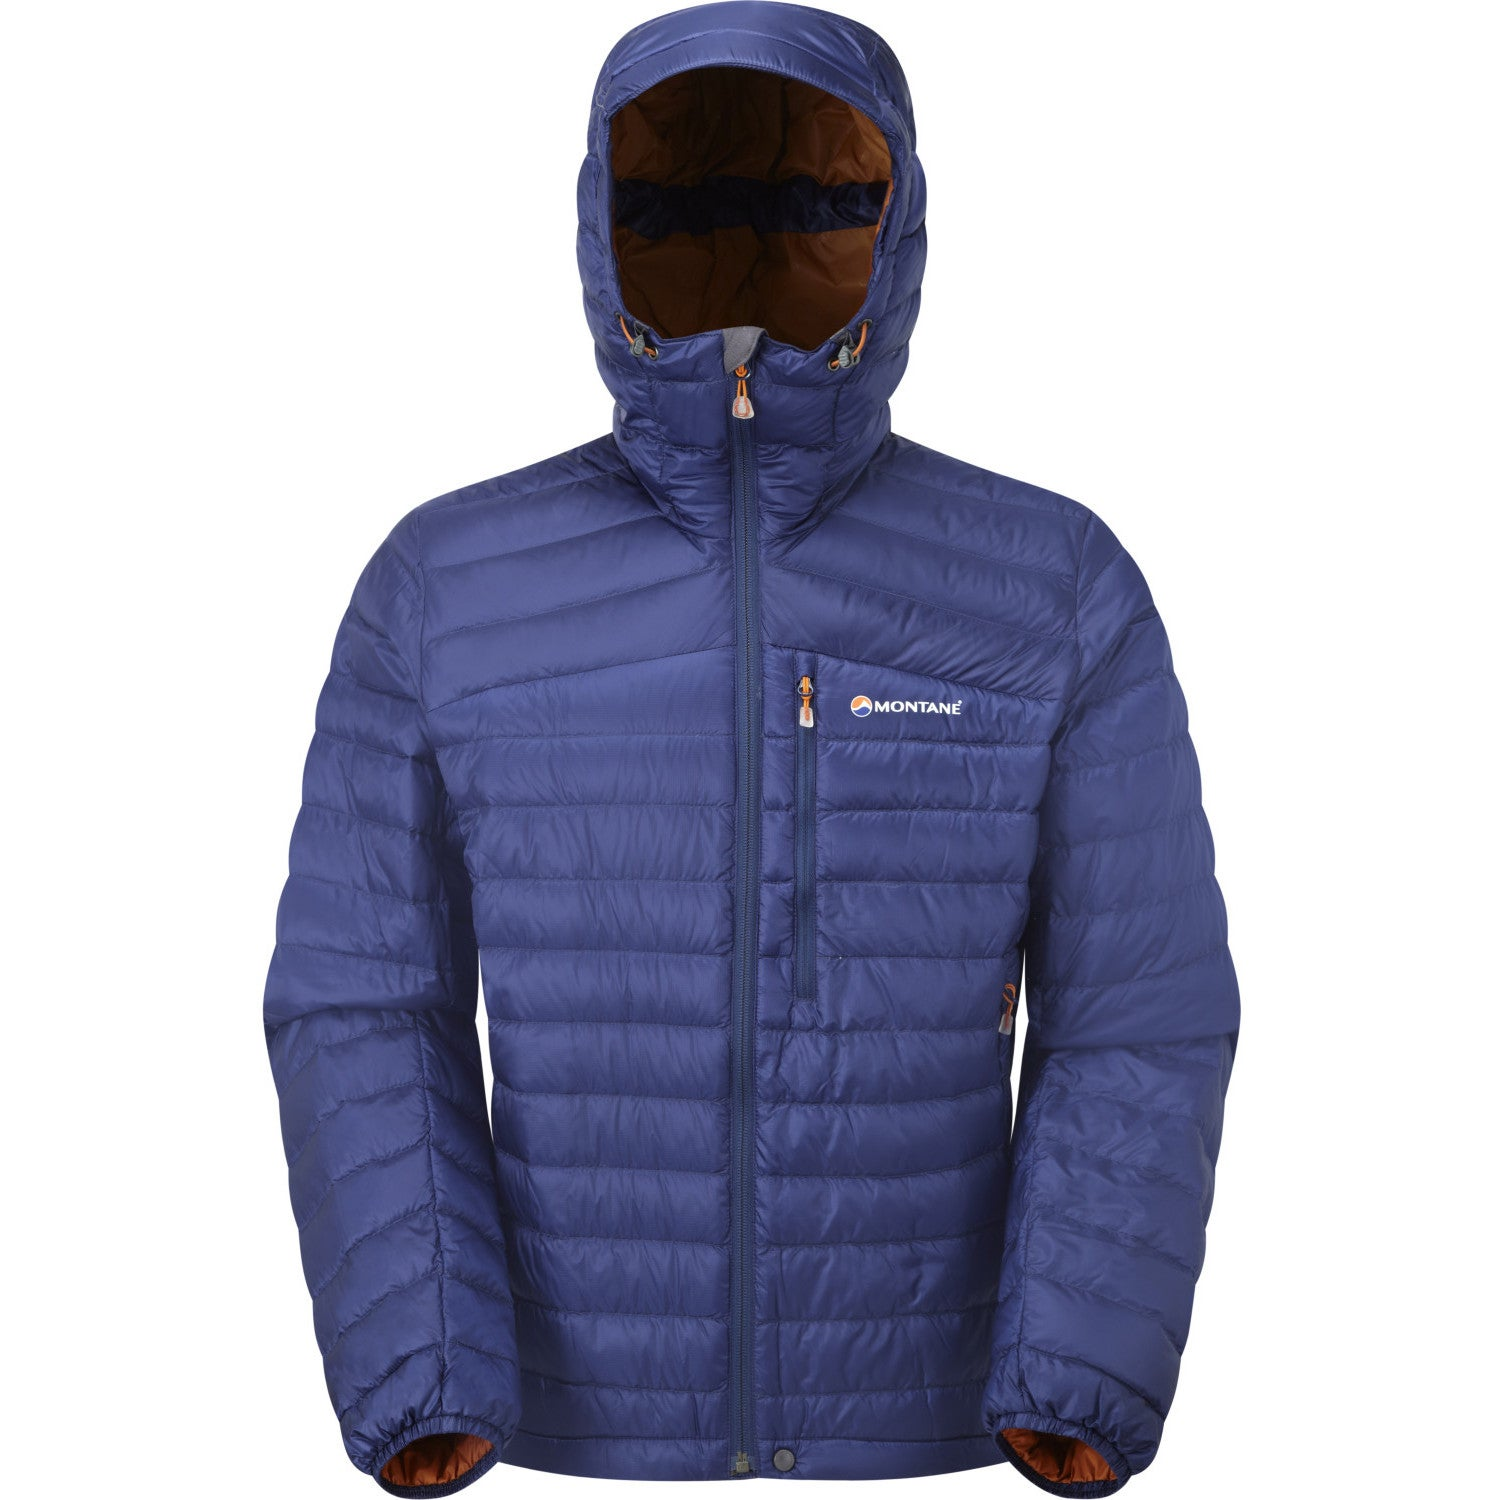 5a664478569 Montane Featherlite Mens Down Jacket available at Webtogs